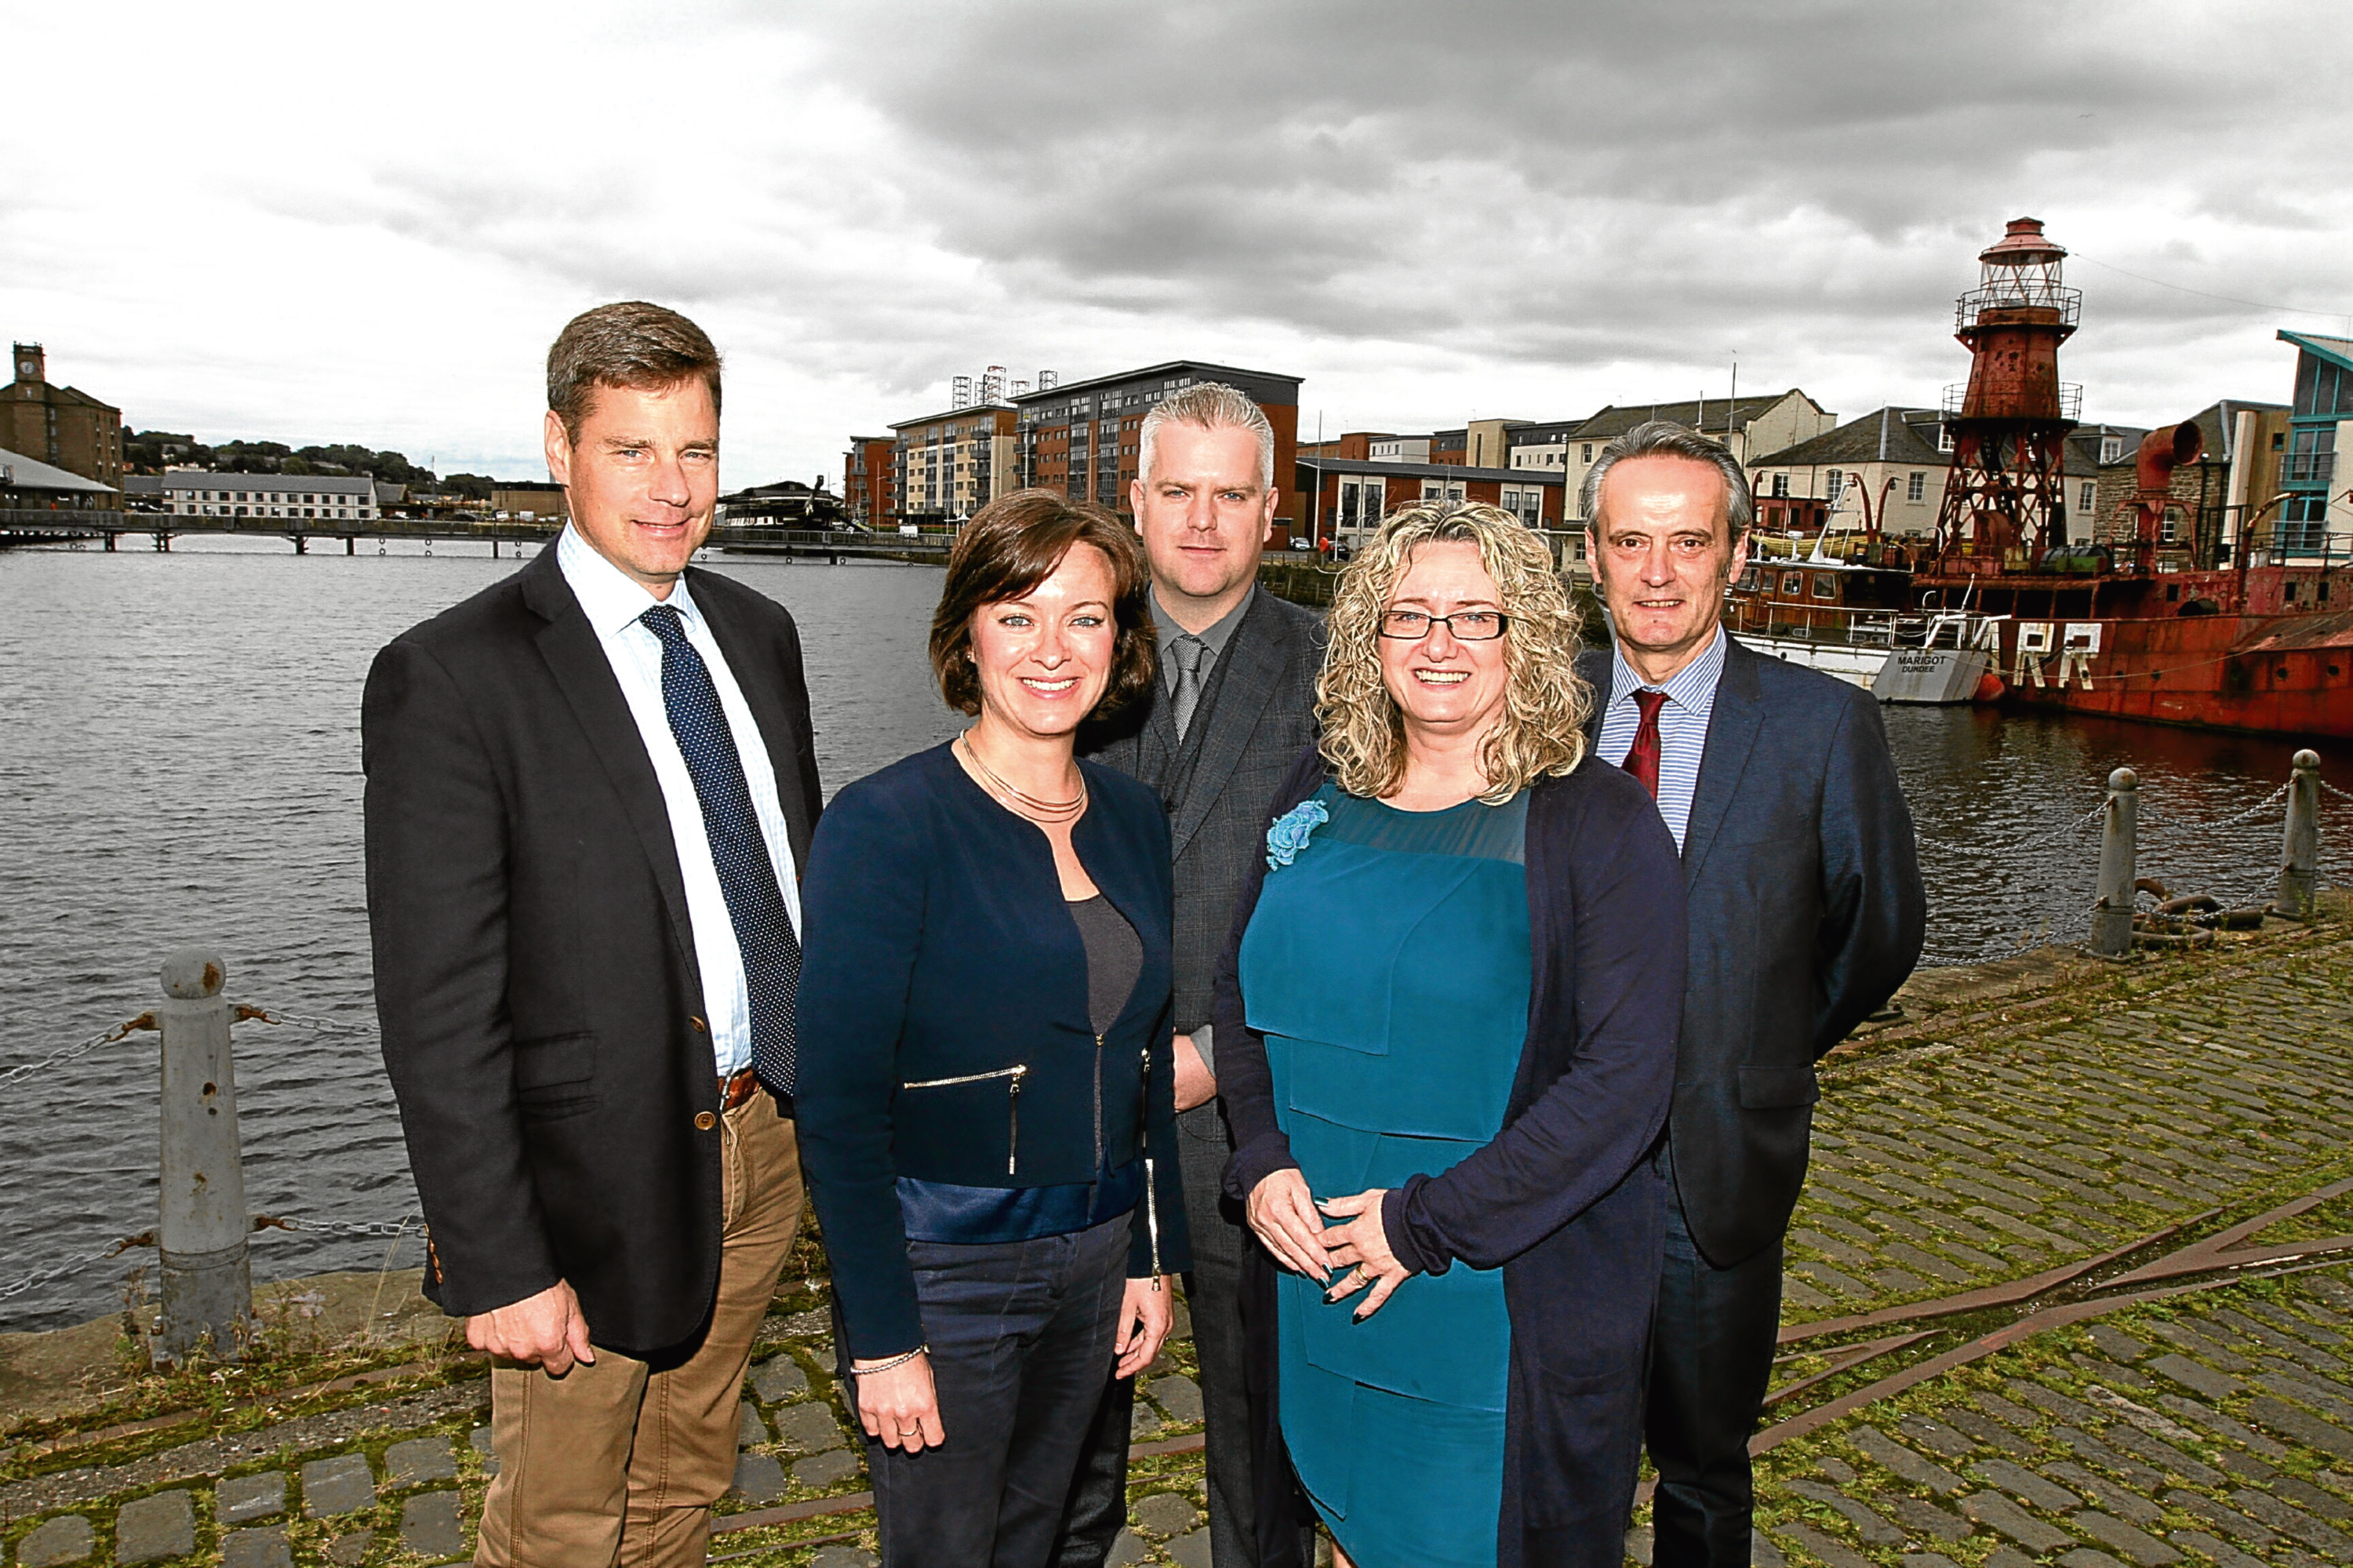 Duncan Manning, Jenny Marra, David Webster, Alison Henderson, and Grant Ritchie